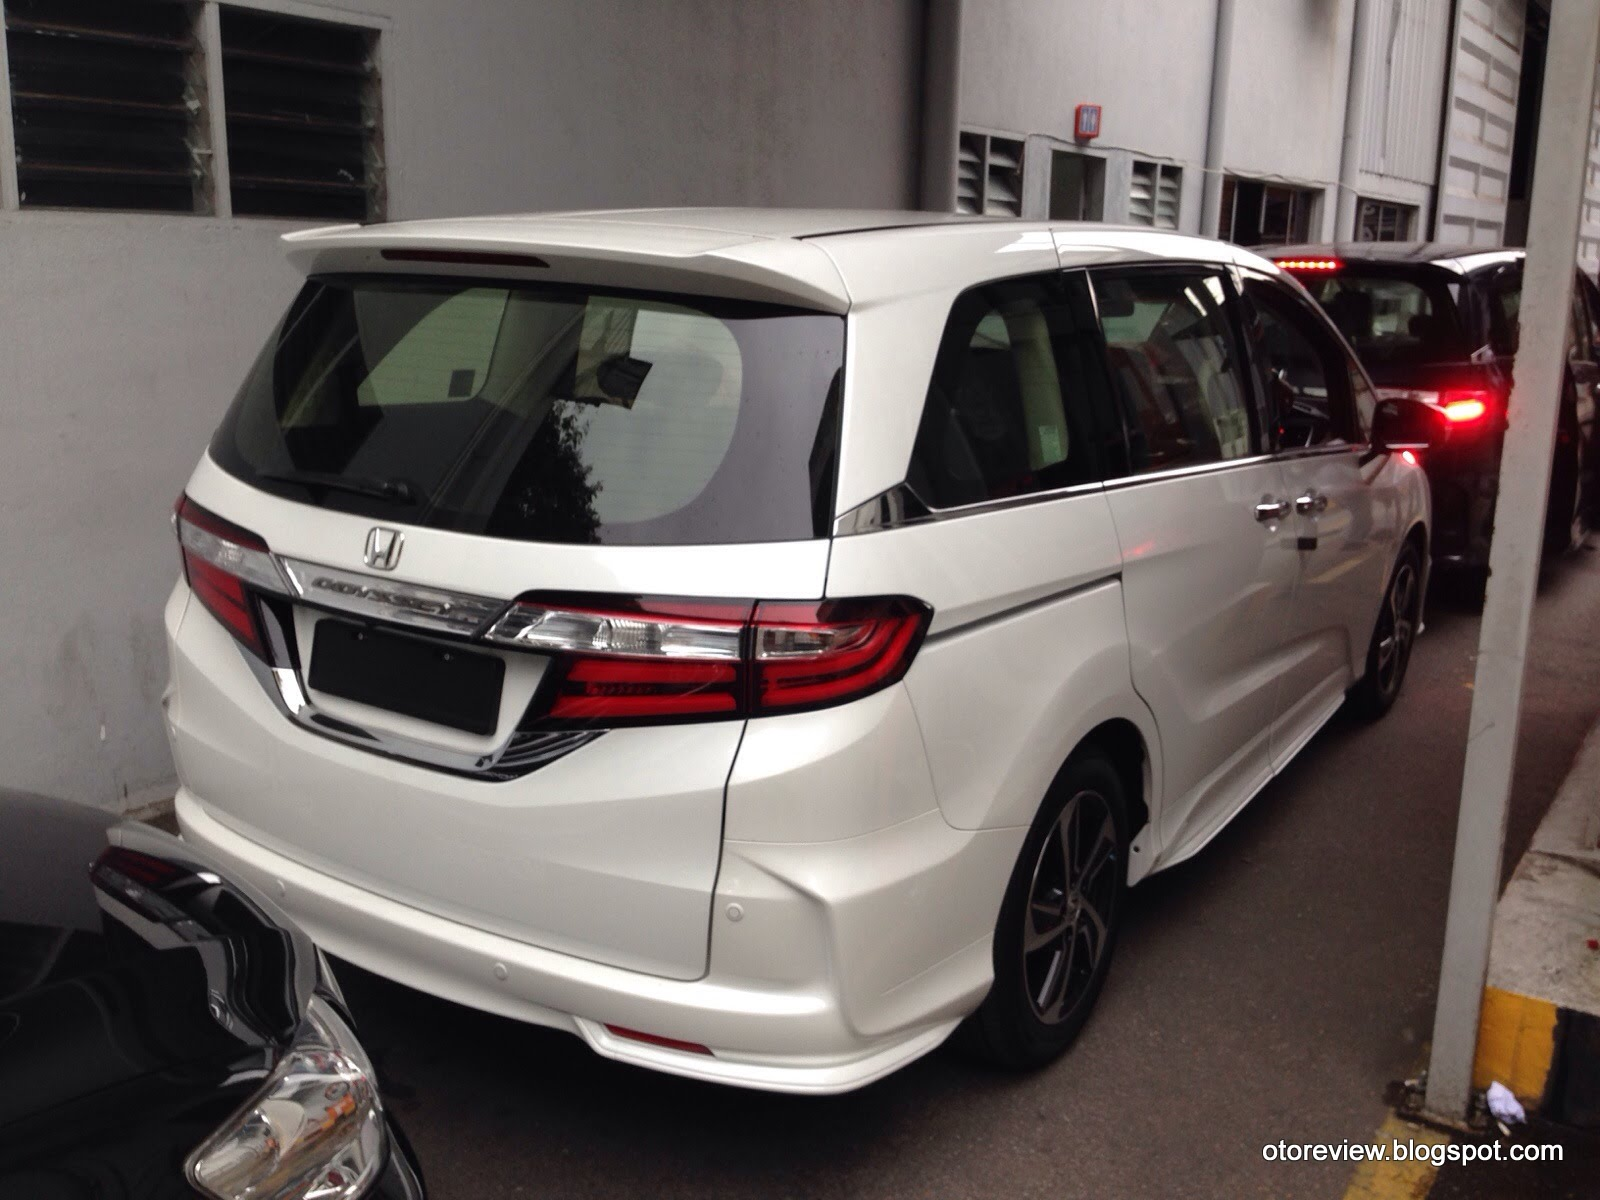 production expensive most news costs odyssey price honda